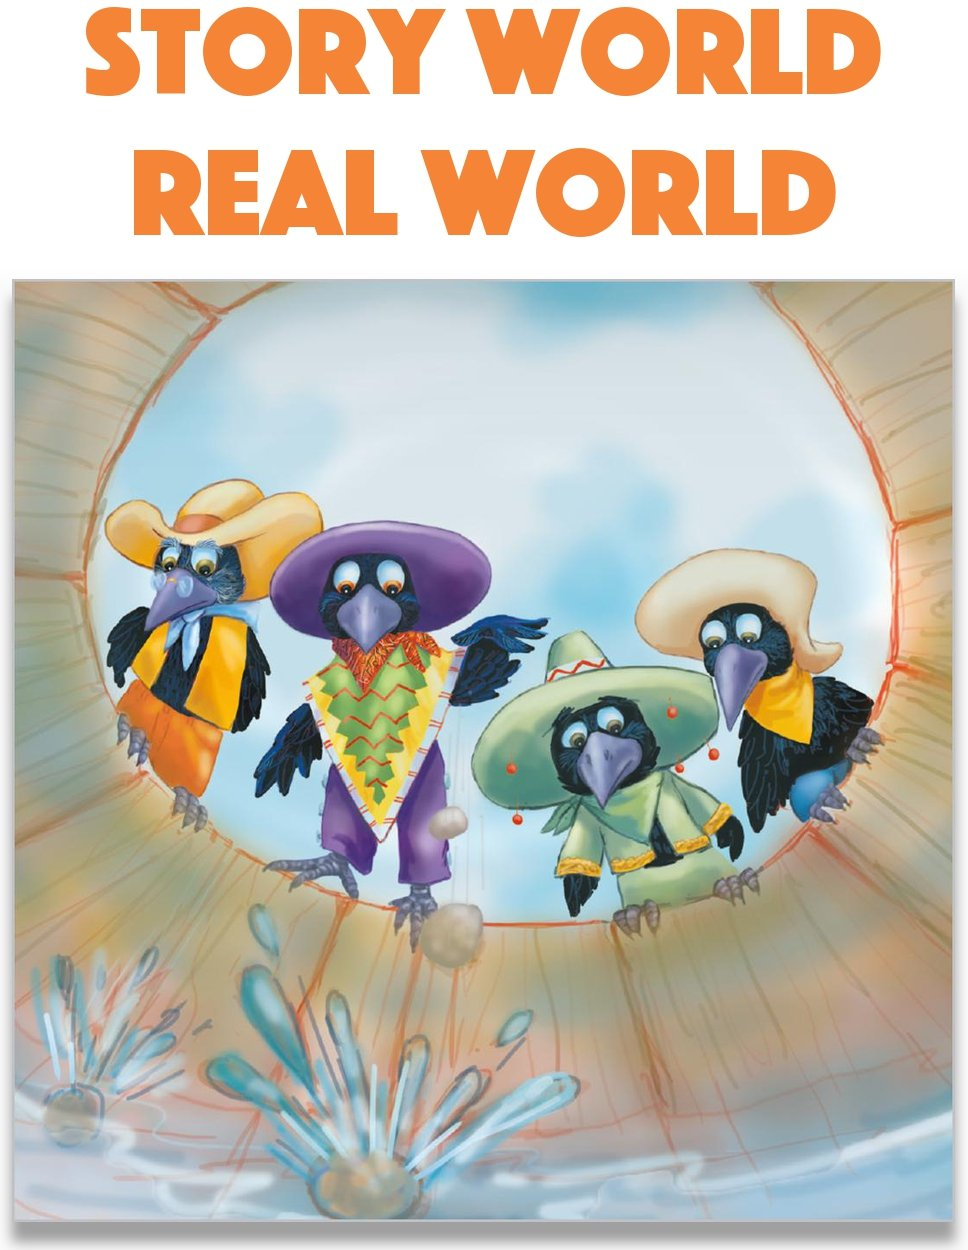 Story World Real World